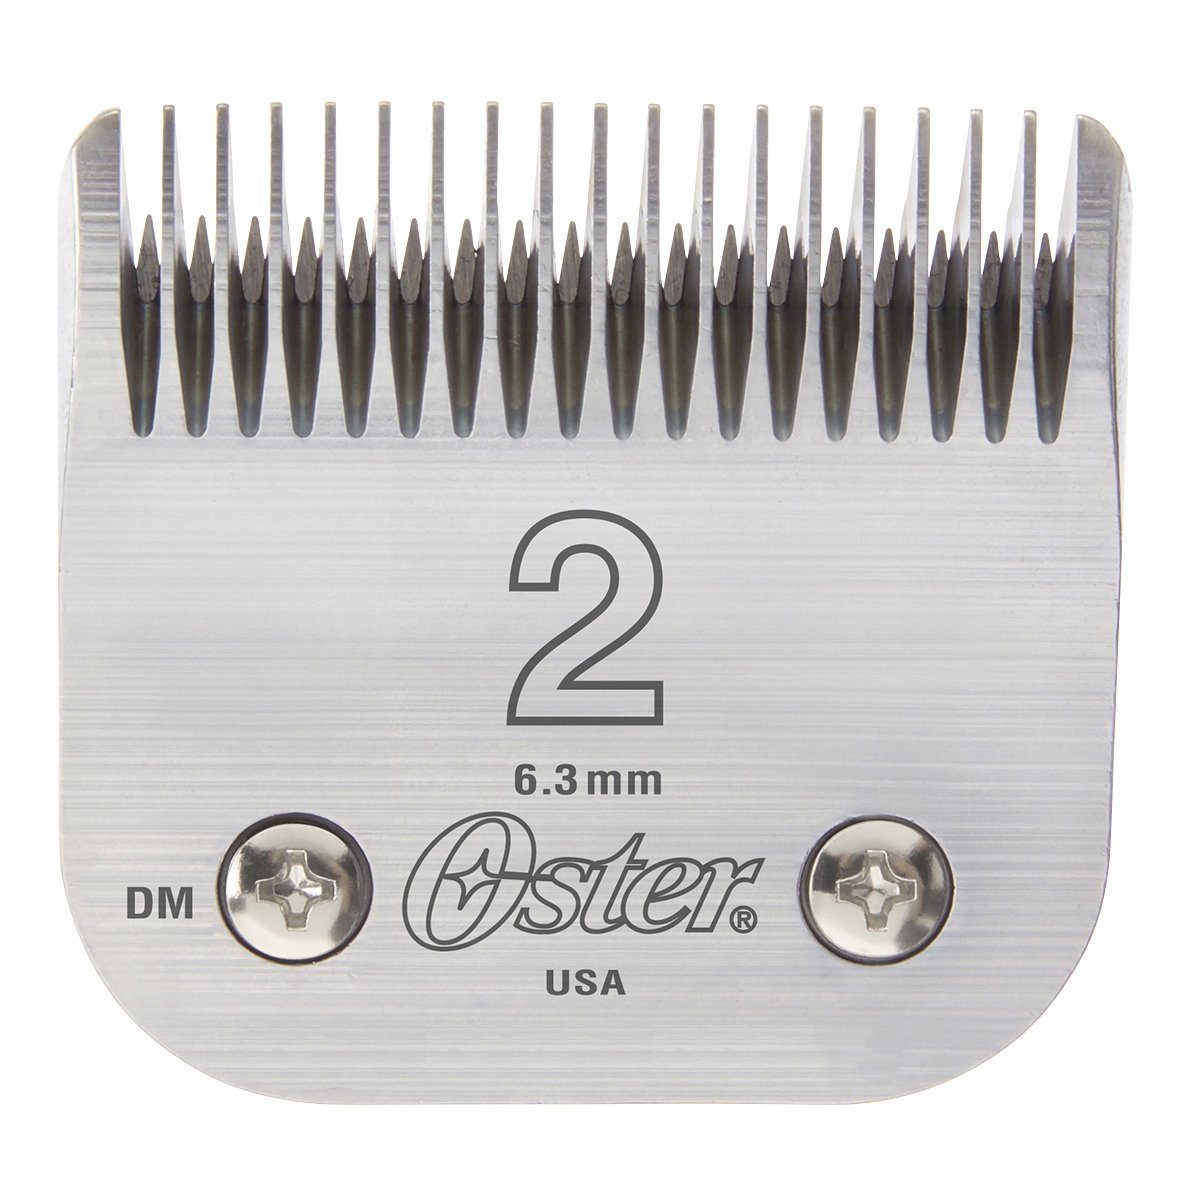 Oster Professional 76918-126 Replacement Blade, Classic 76/Star-Teq/Power-Teq Clippers, Size #2, 1/4 (6.3mm) 1/4 (6.3mm) 076918-126-005